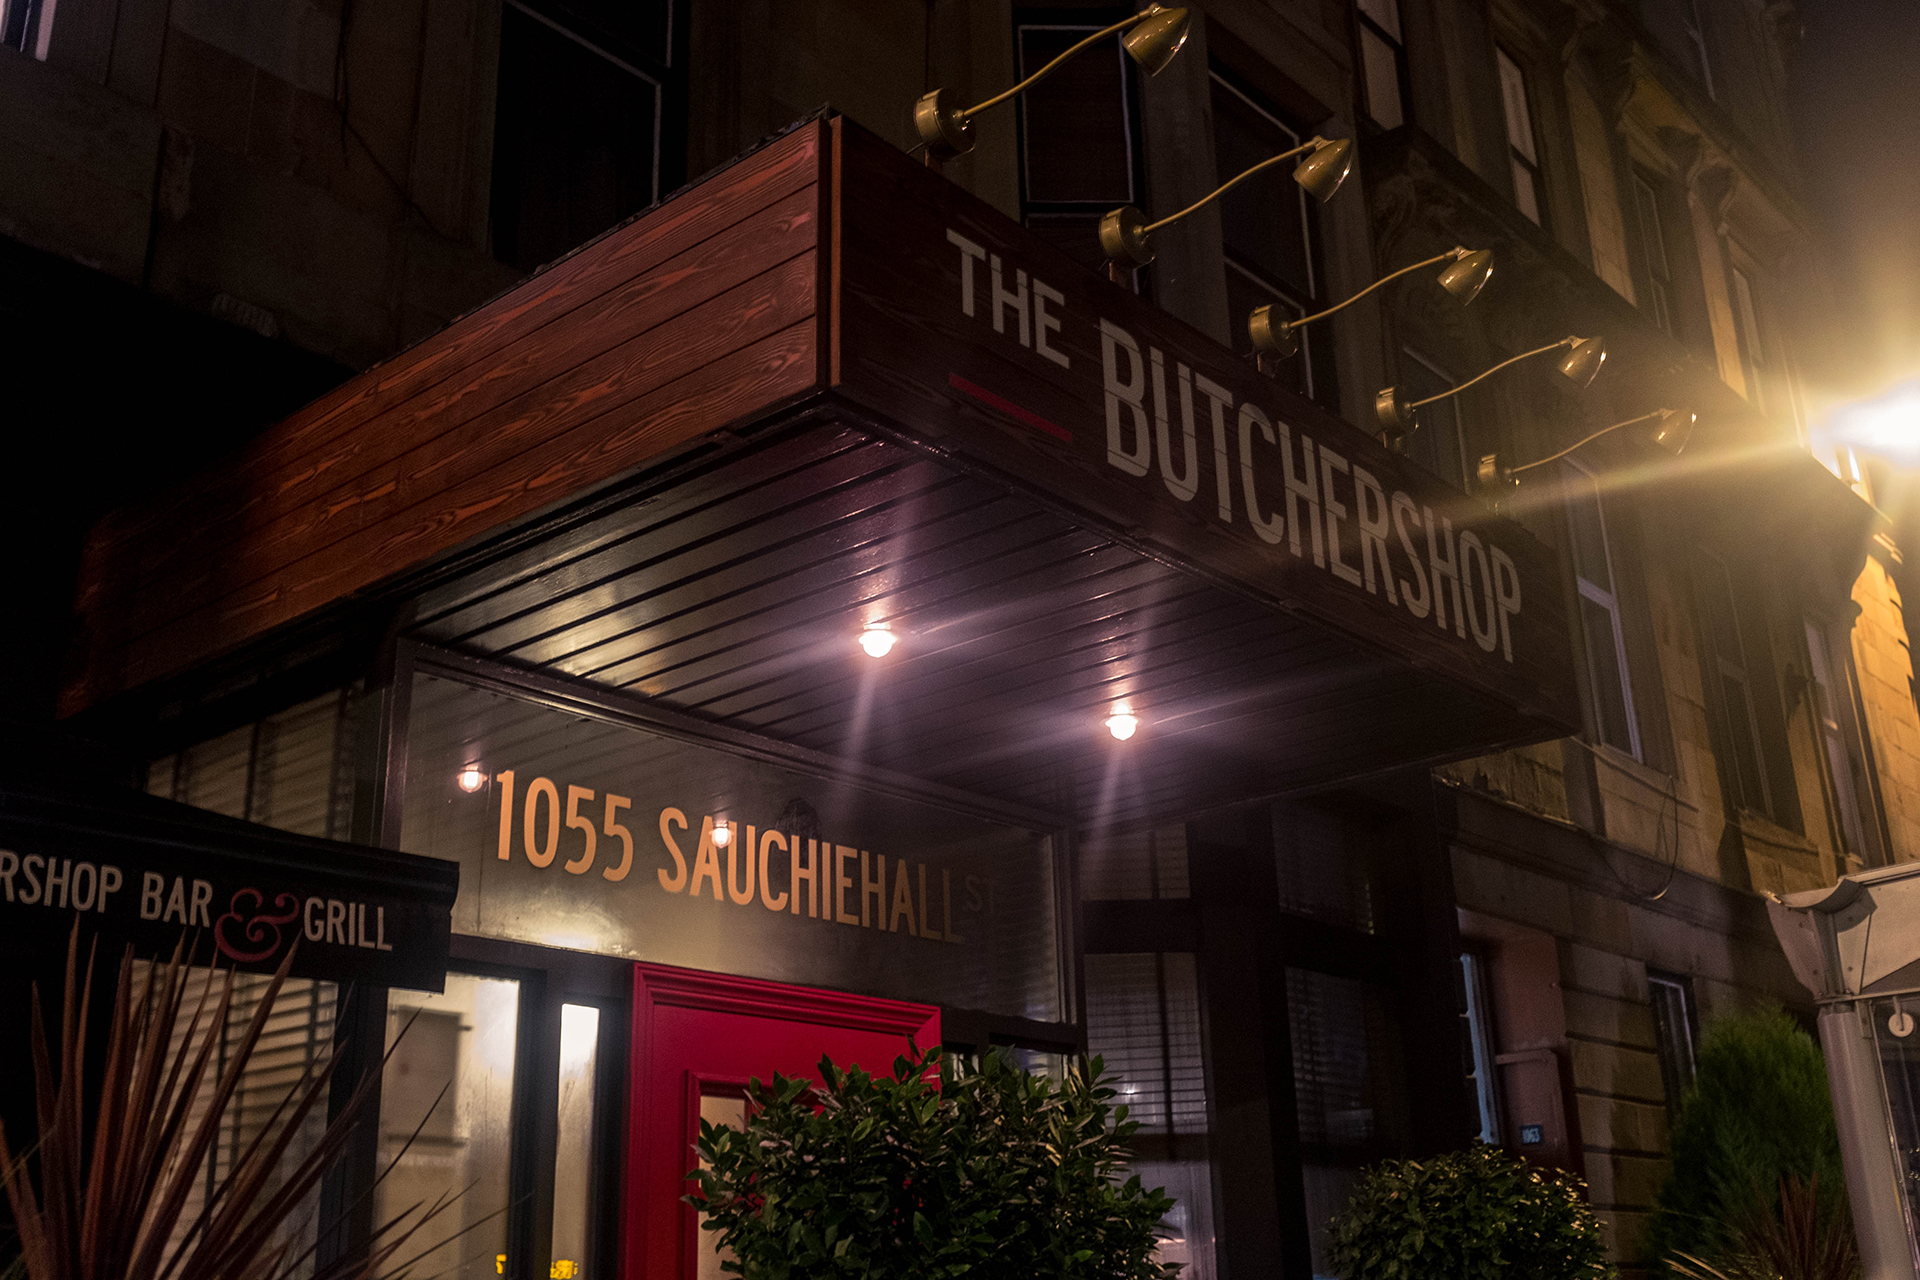 butchershop bar & grill entrance